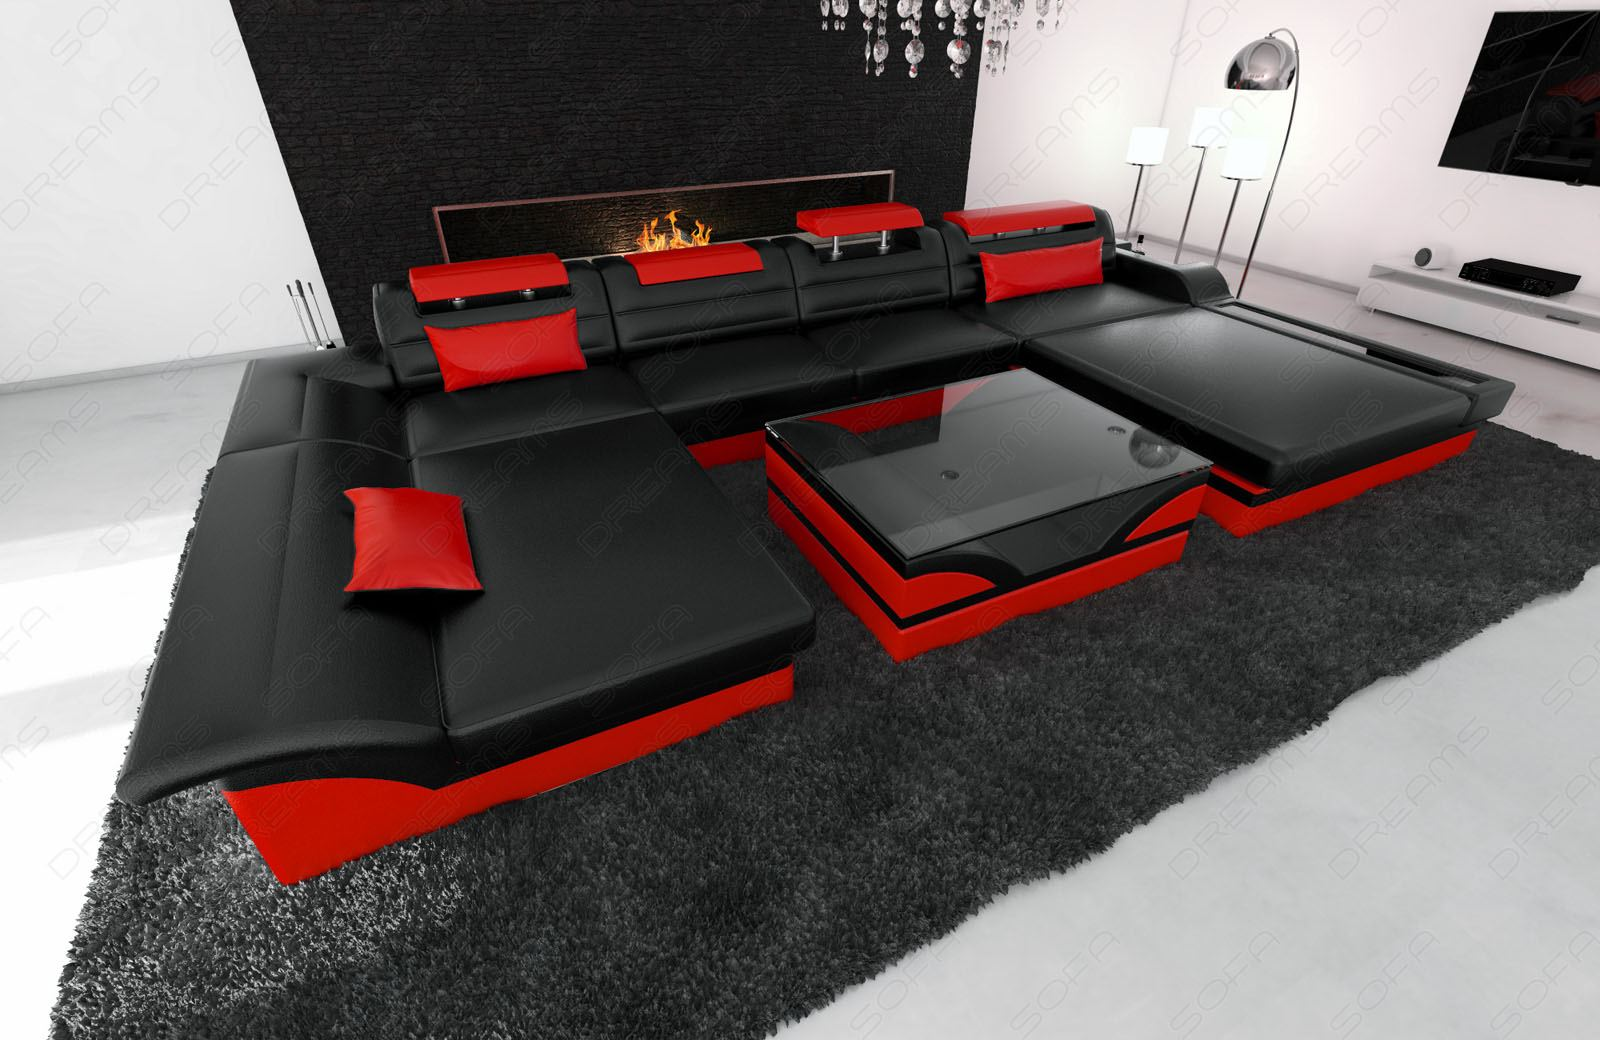 wohnlandschaft monza u leder designsofa mit led beleuchtung ottomane luxuscouch ebay. Black Bedroom Furniture Sets. Home Design Ideas